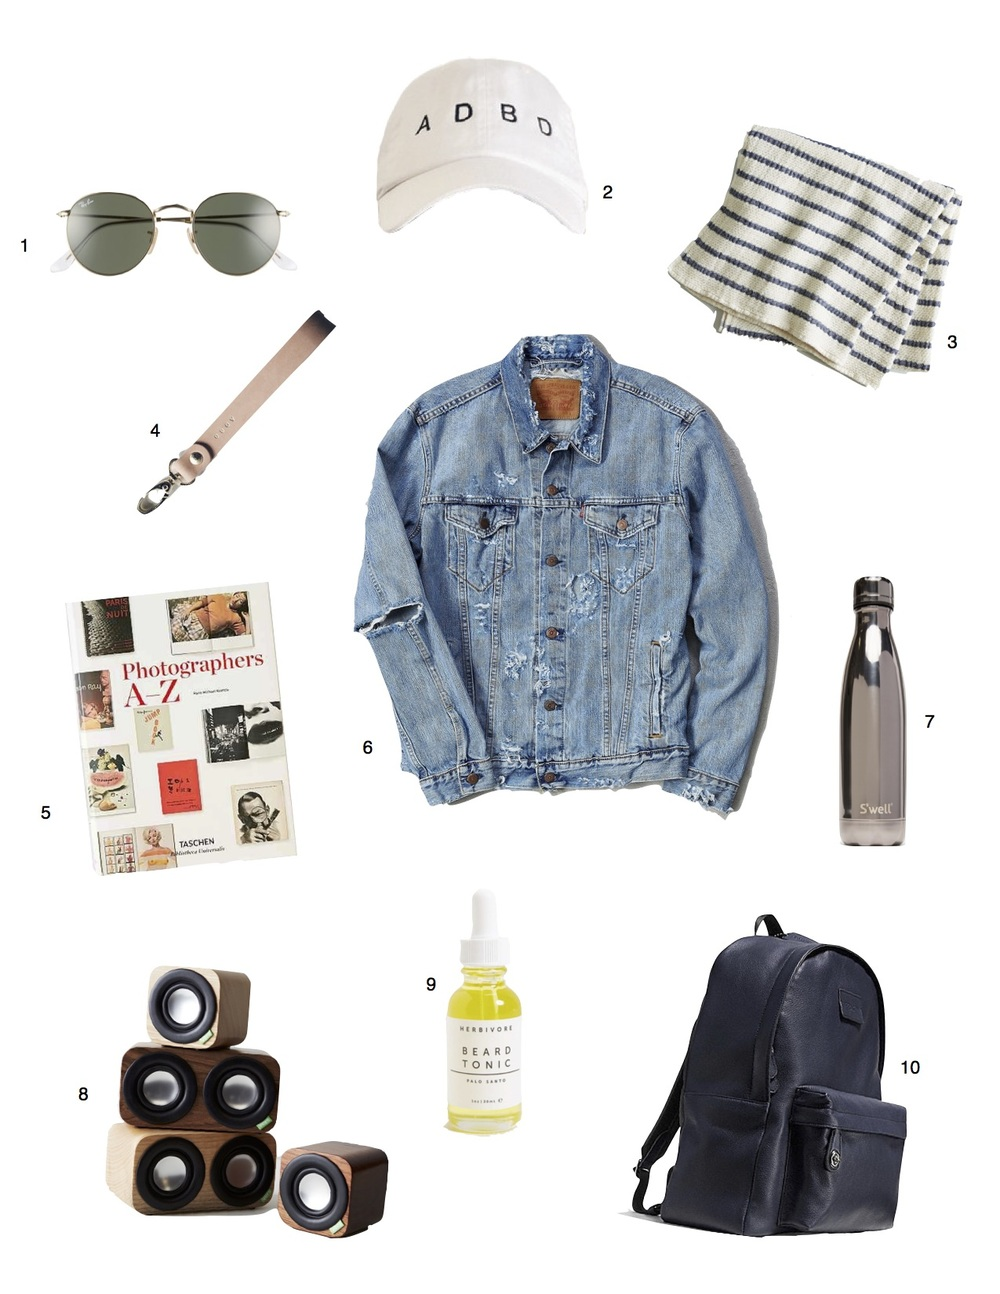 blog_giftguide_fathersday_cooldads.jpg